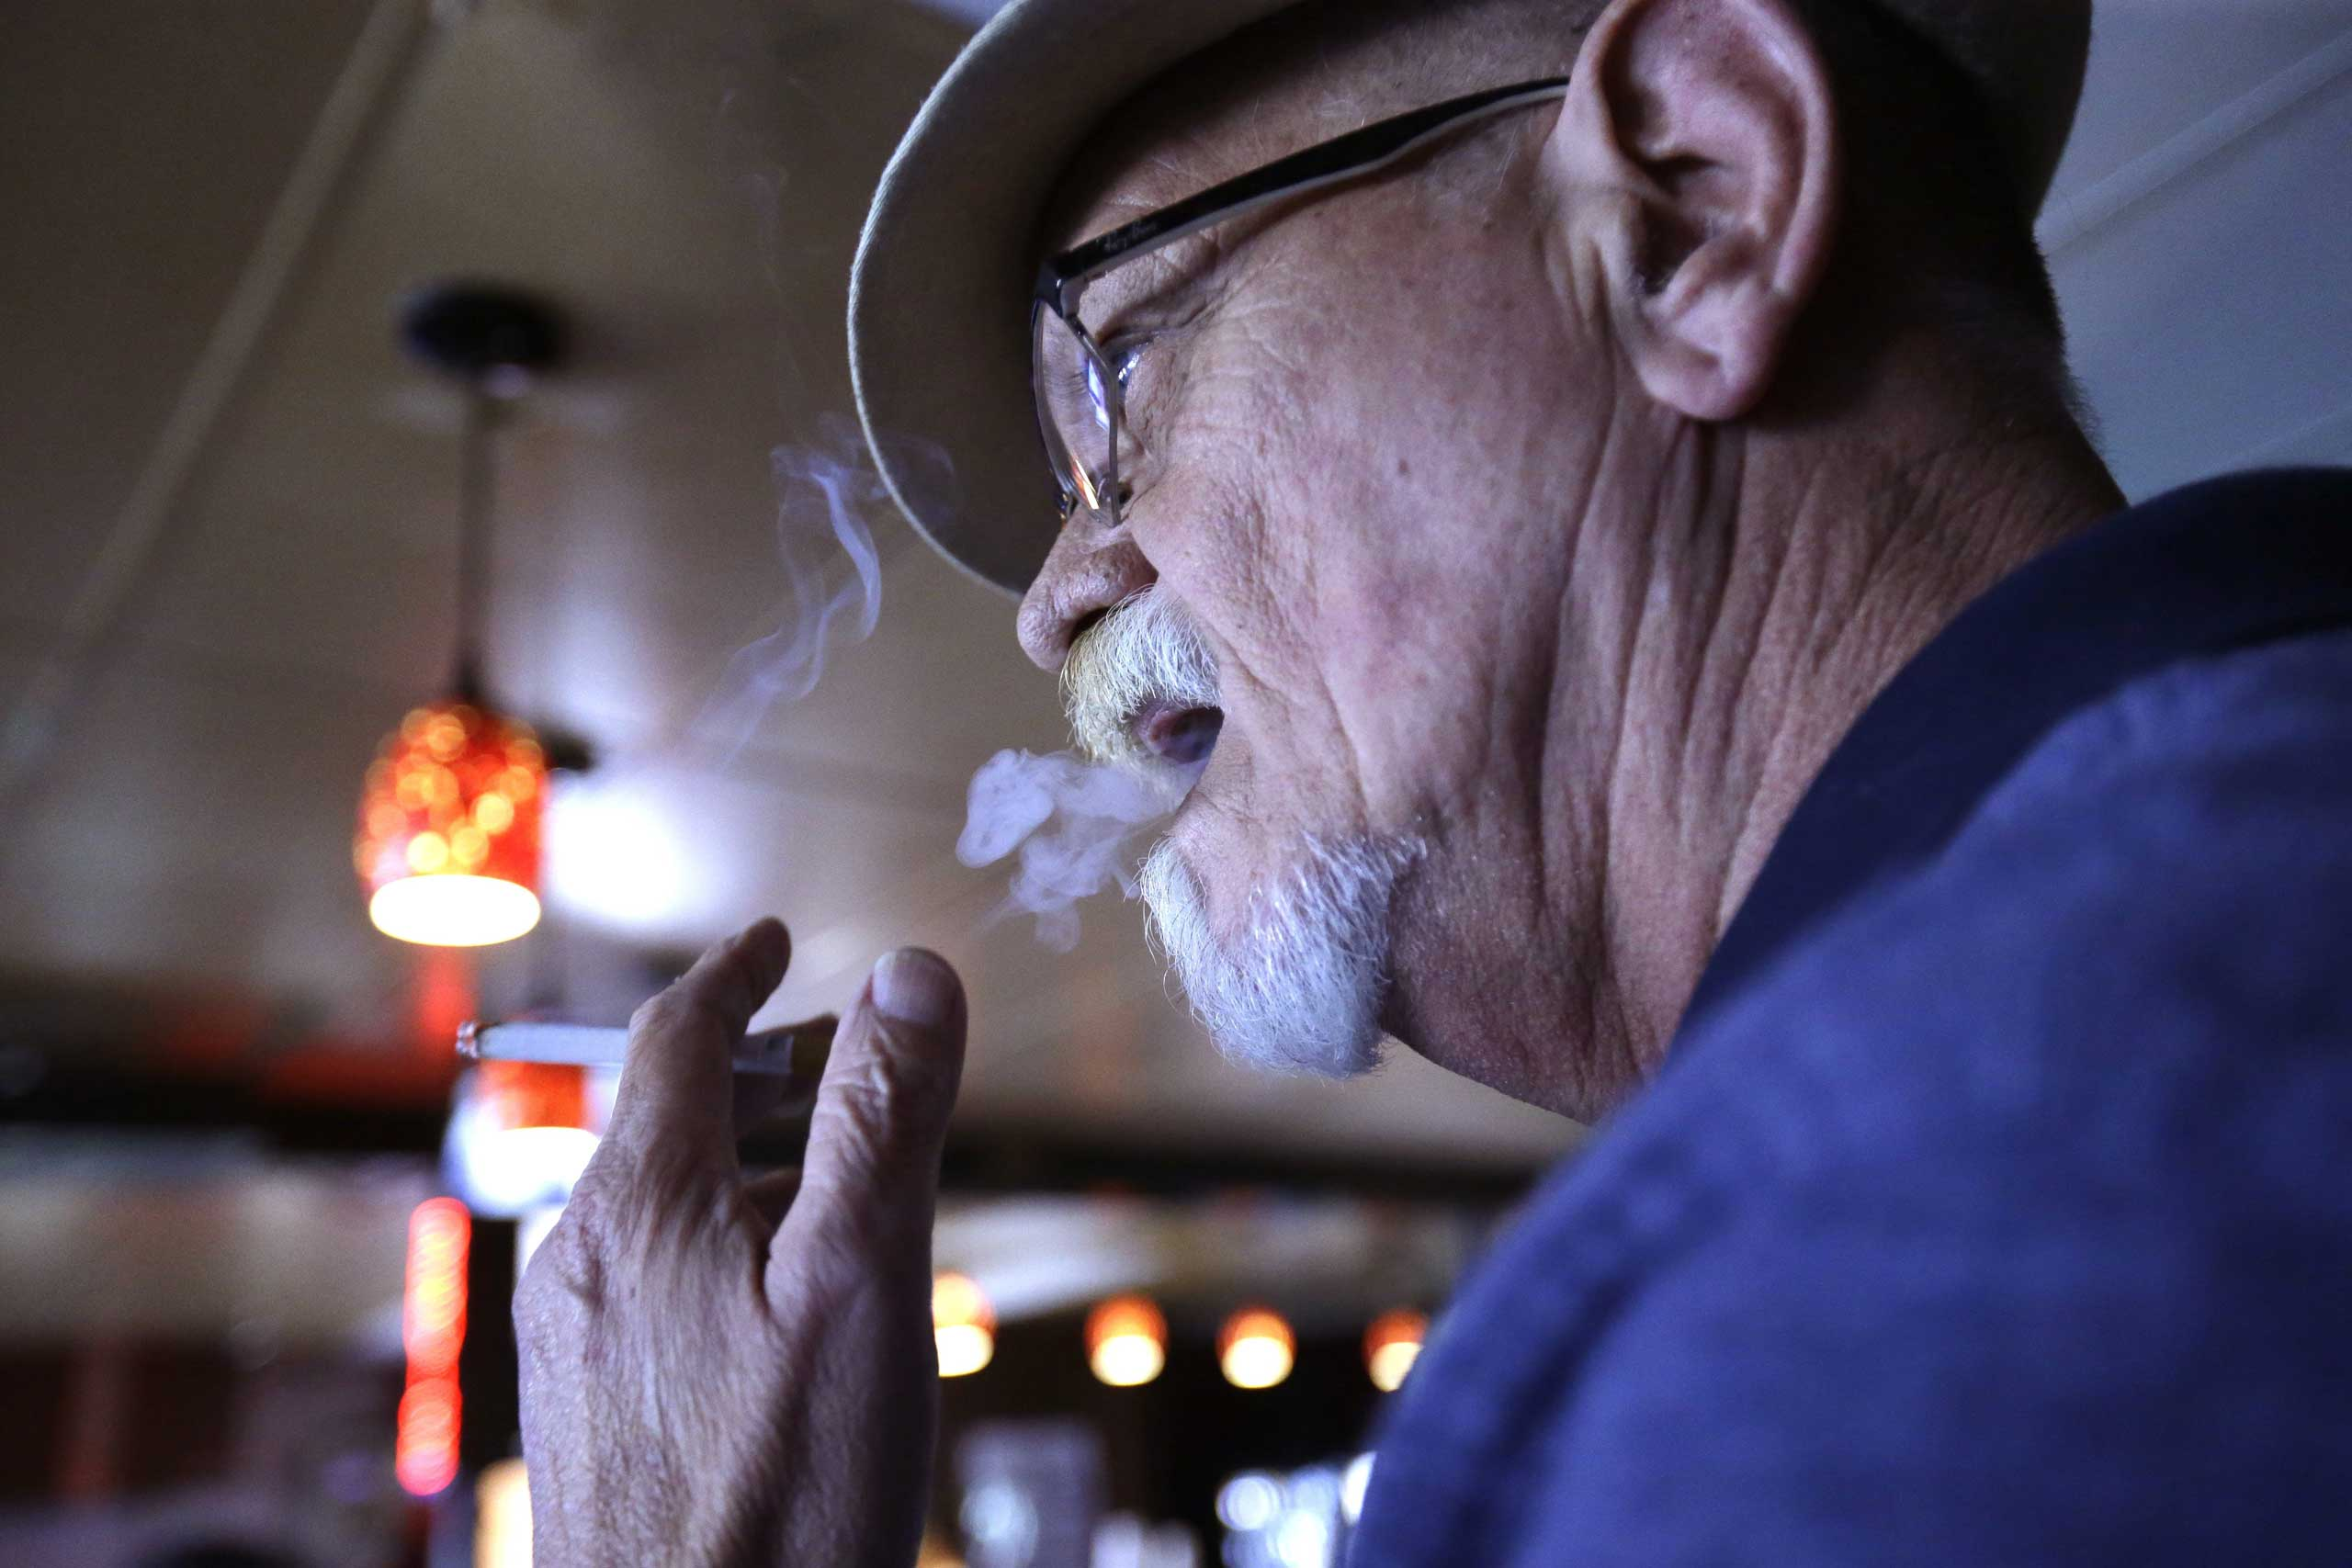 Barry Rutherford smokes a cigarette inside Kajun's Pub in New Orleans April 21, 2015.